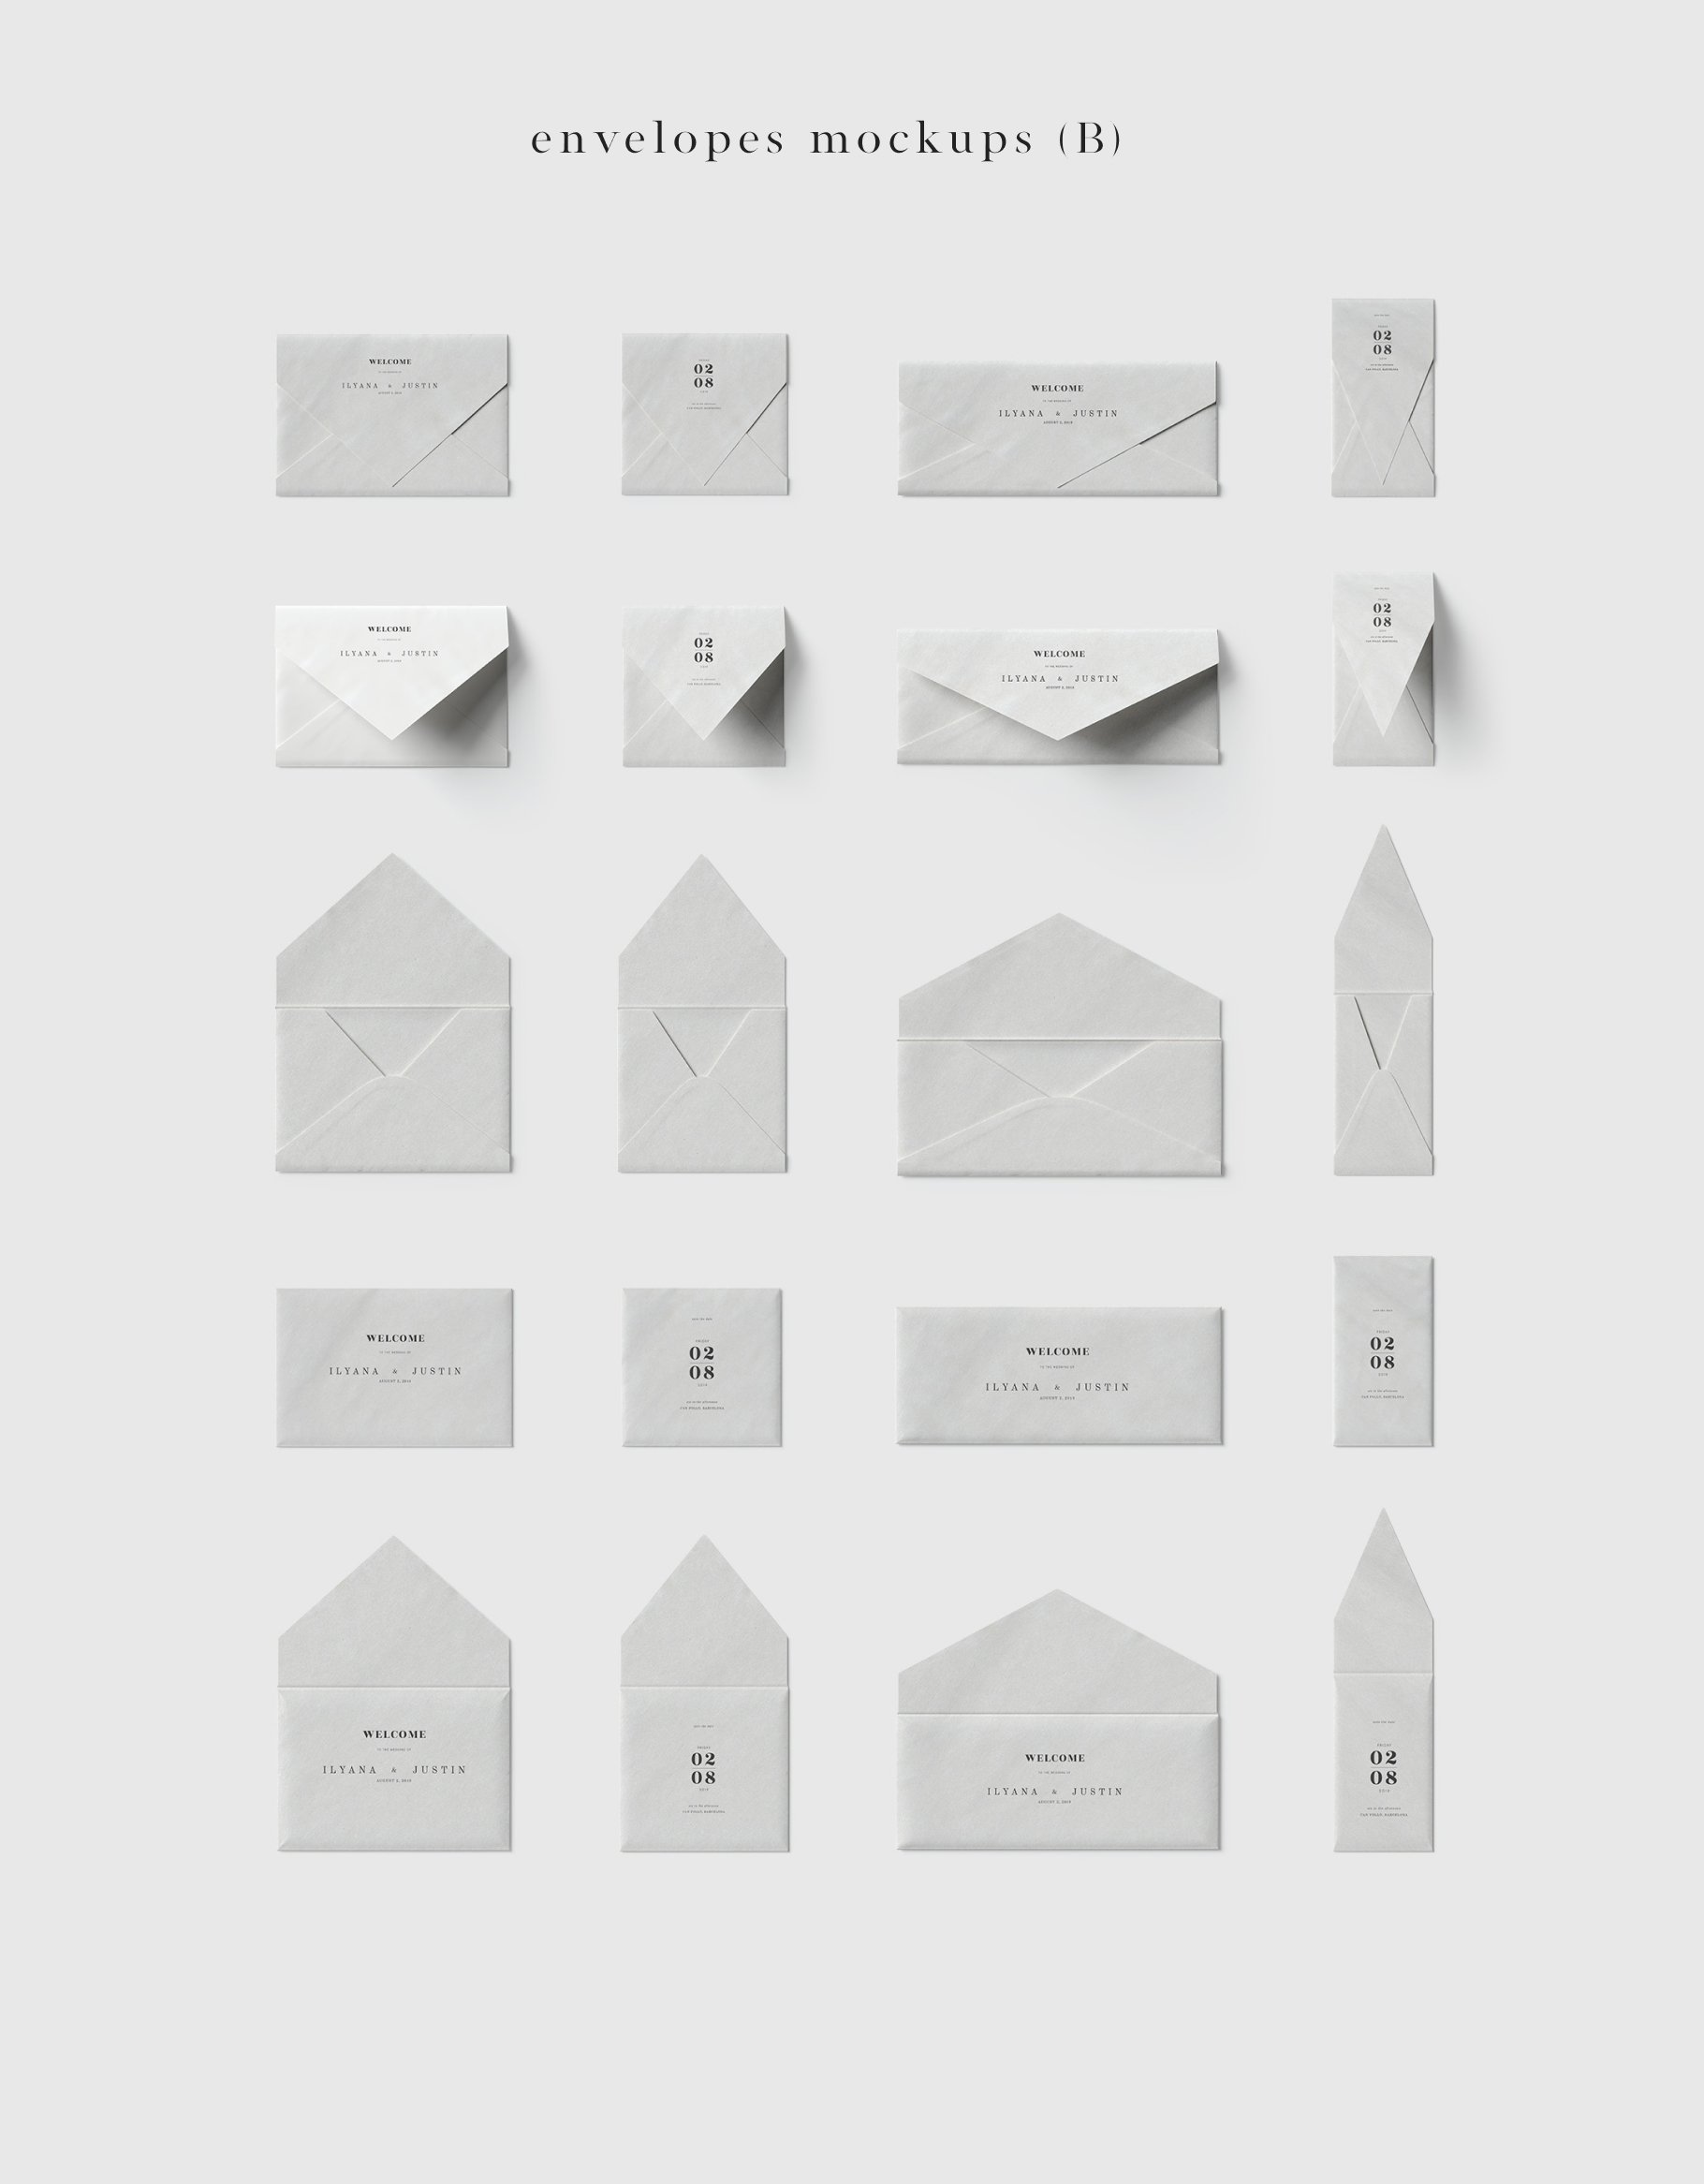 The All-Encompassing Mockup Collection